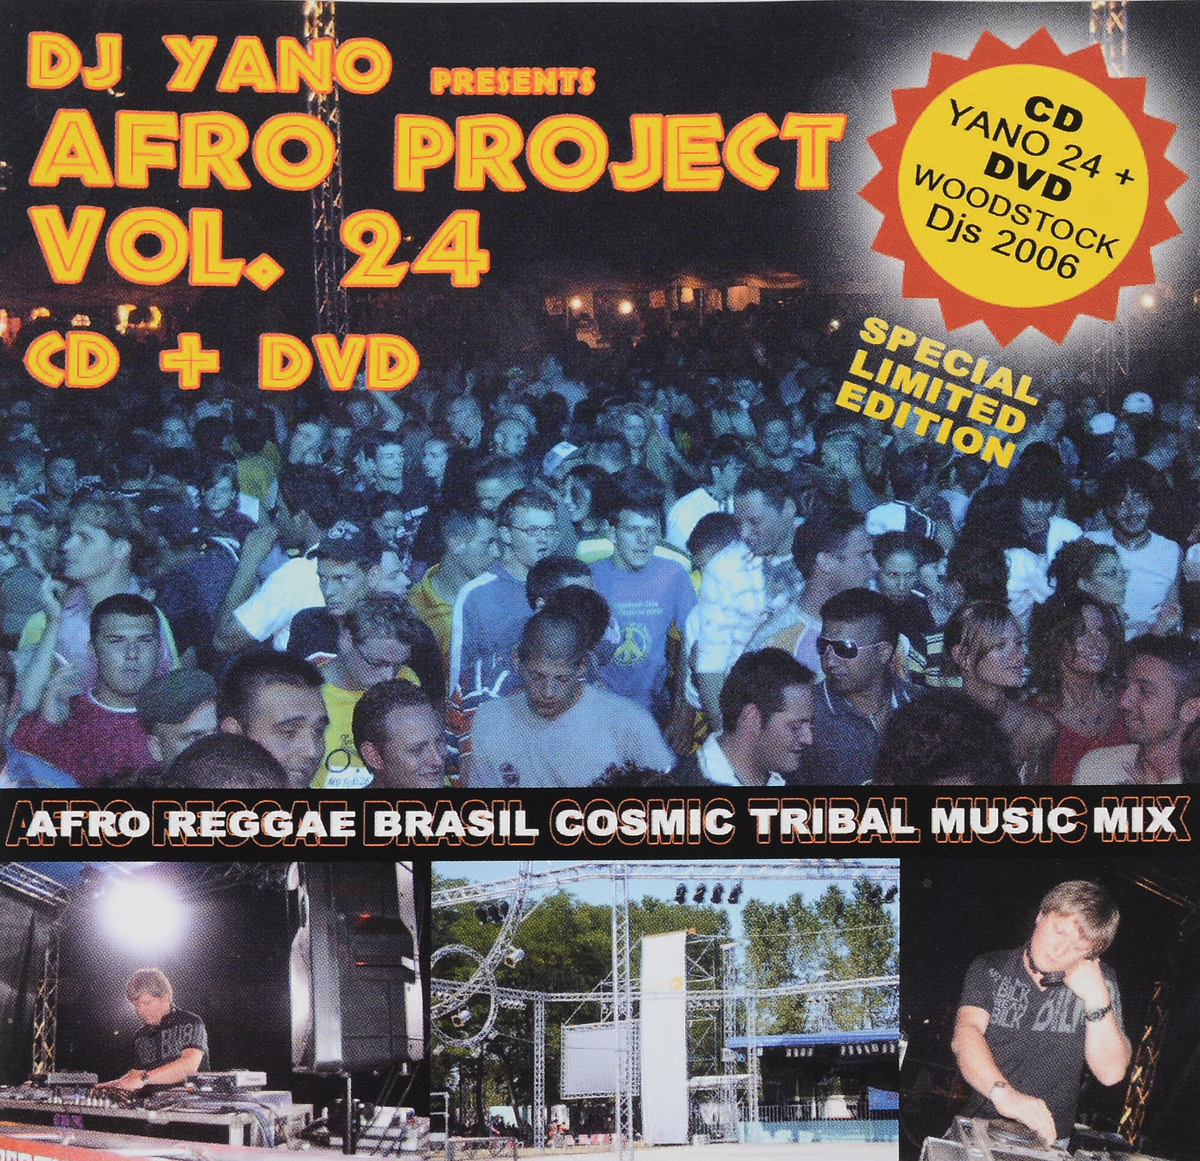 Dj Yano Dj Yano. Afro Project. Vol. 24. Special Limited Edition (CD + DVD) цена и фото